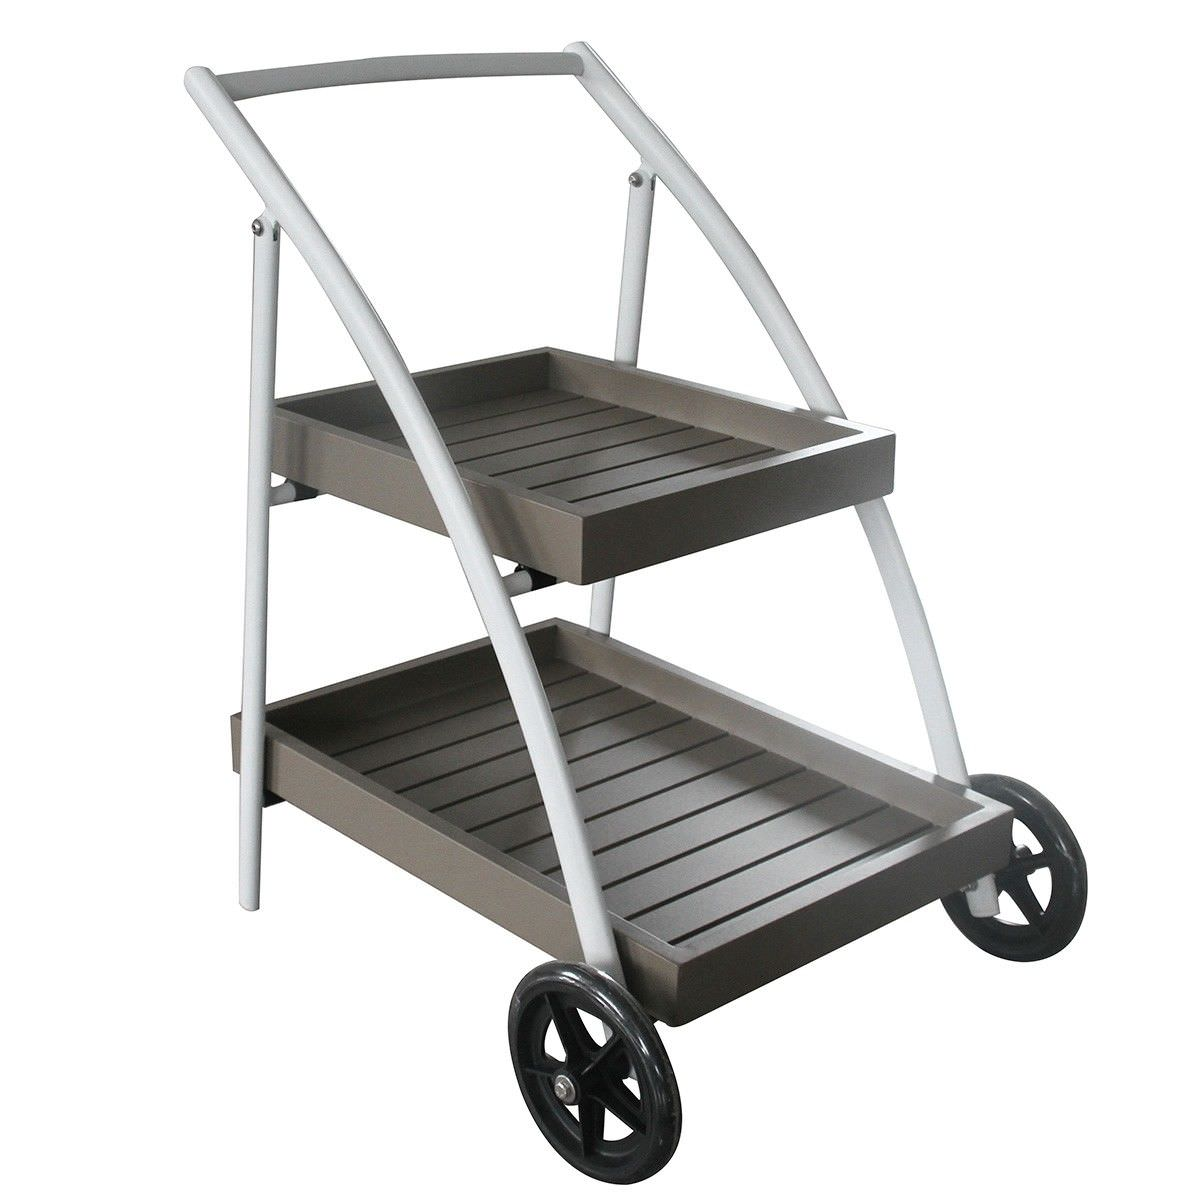 Ruby Aluminium Outdoor Drinks Trolley, White